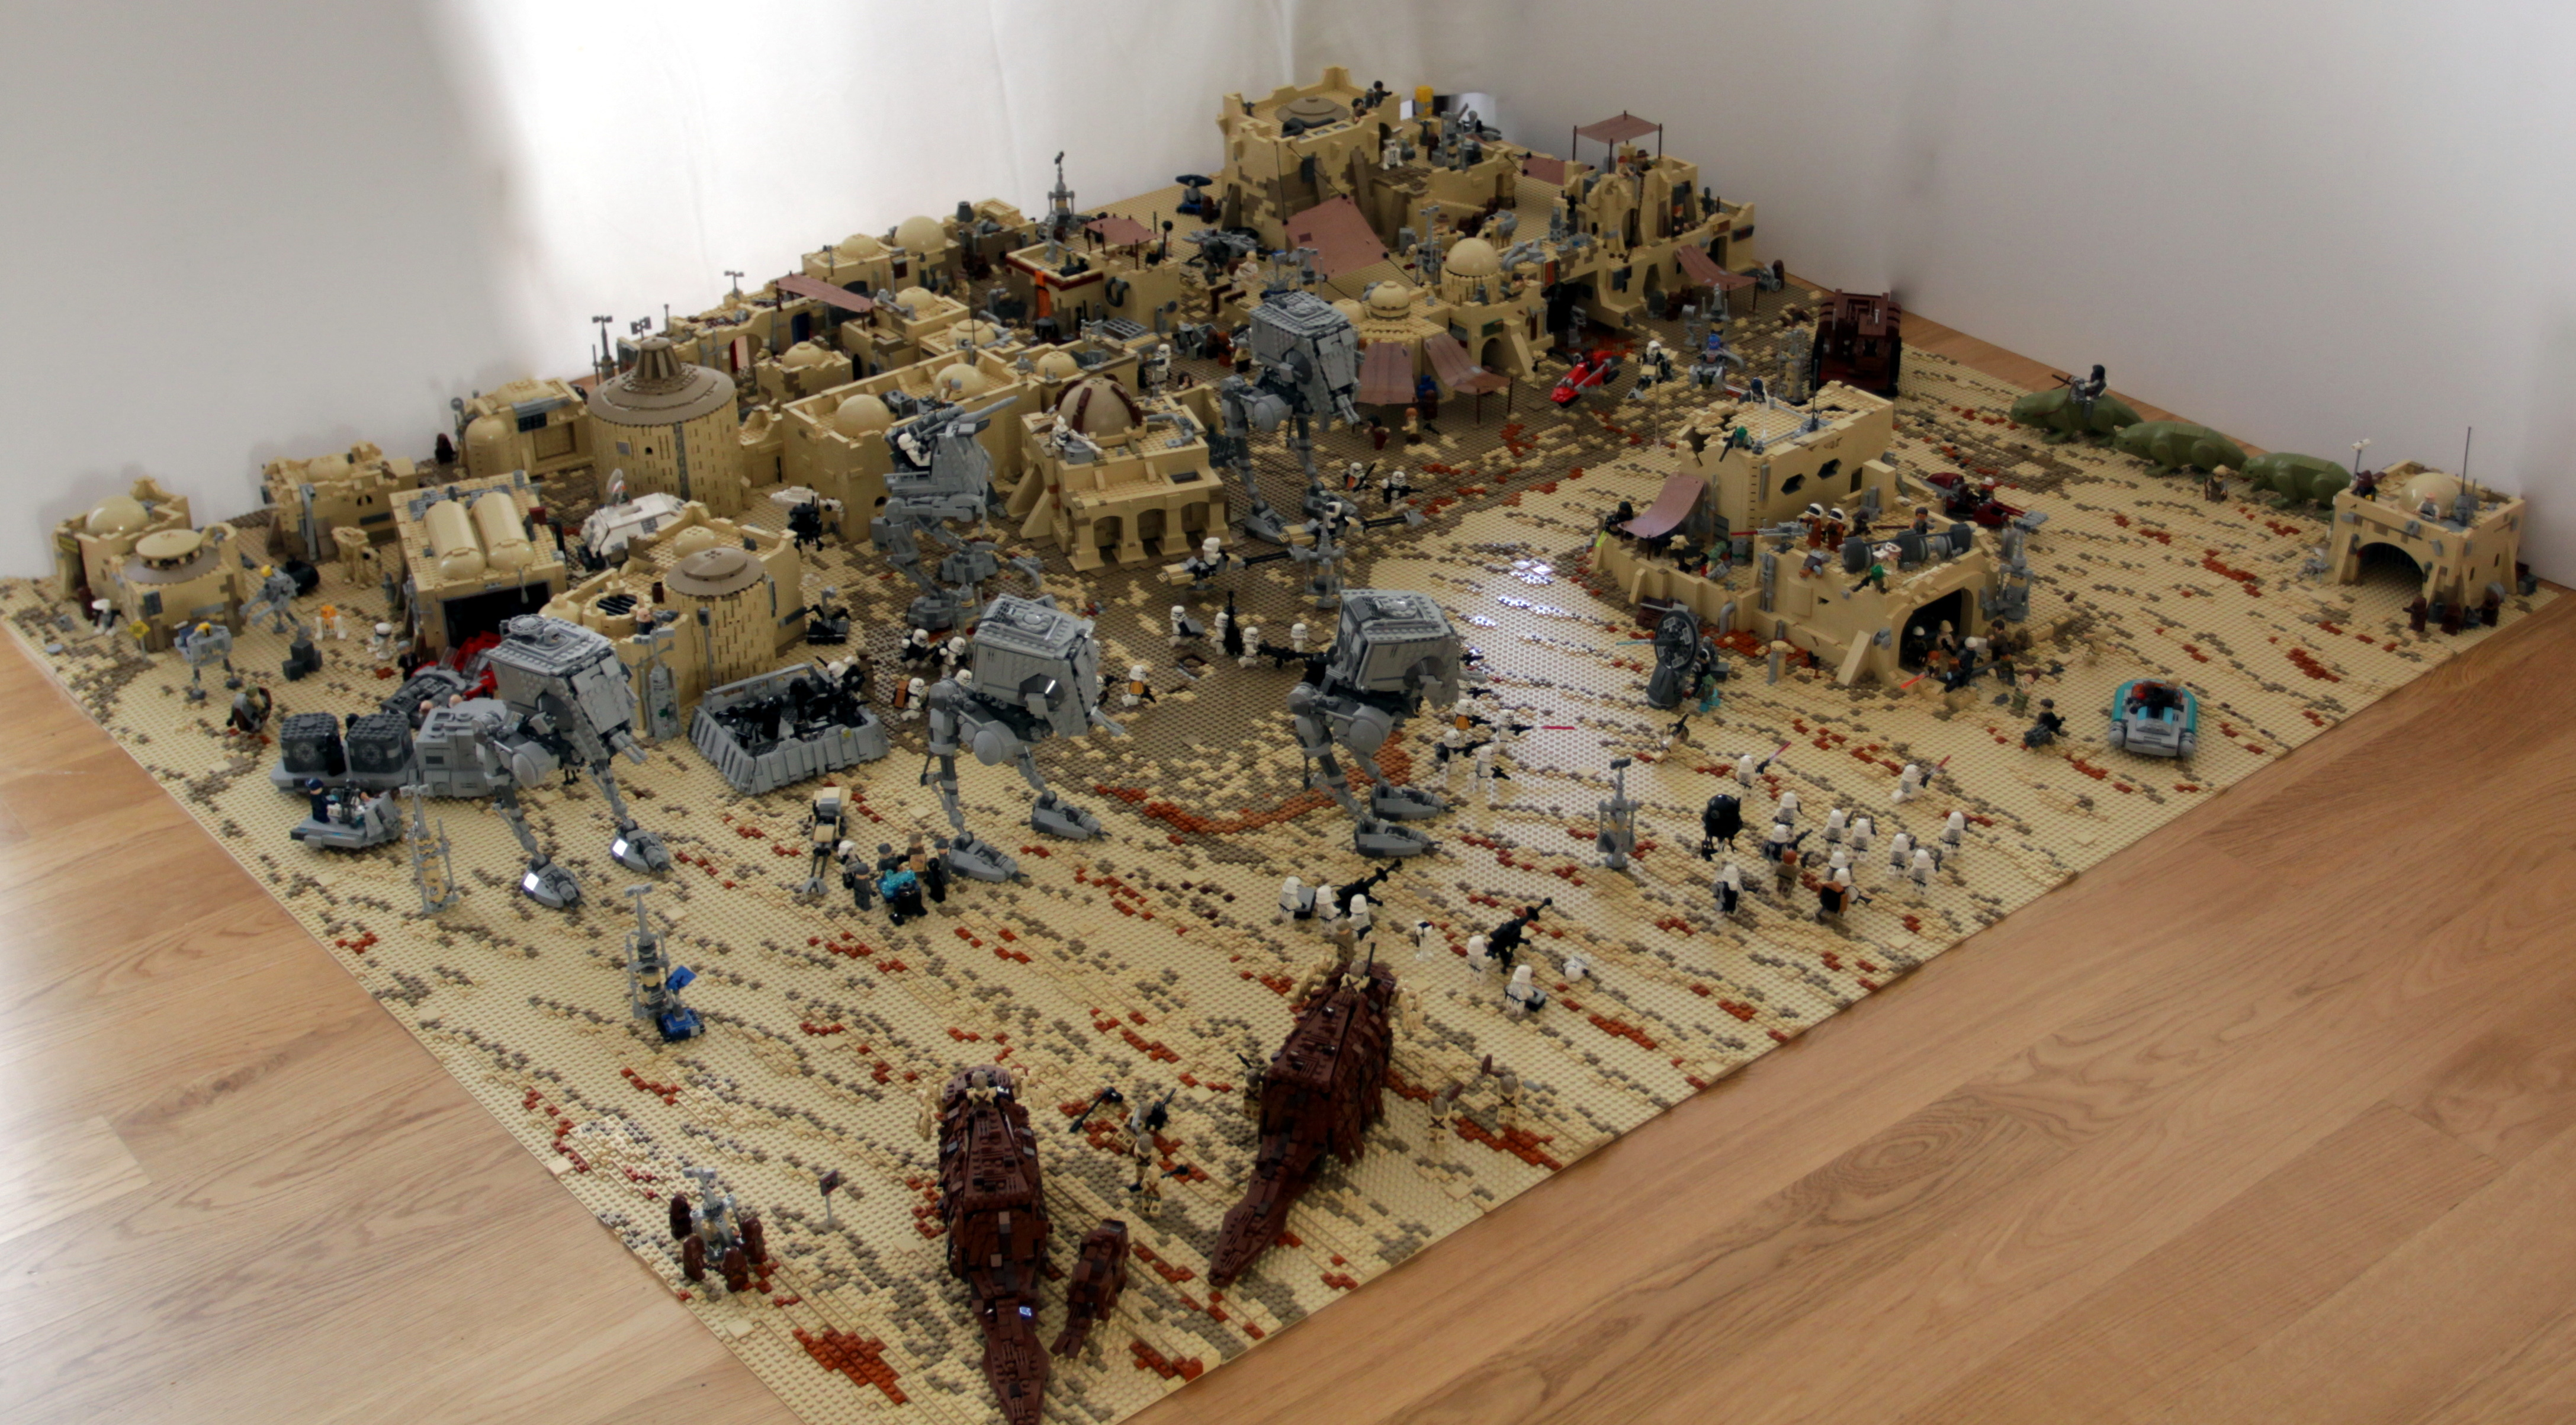 Official Lego Star Wars Building Contest In Final Judging